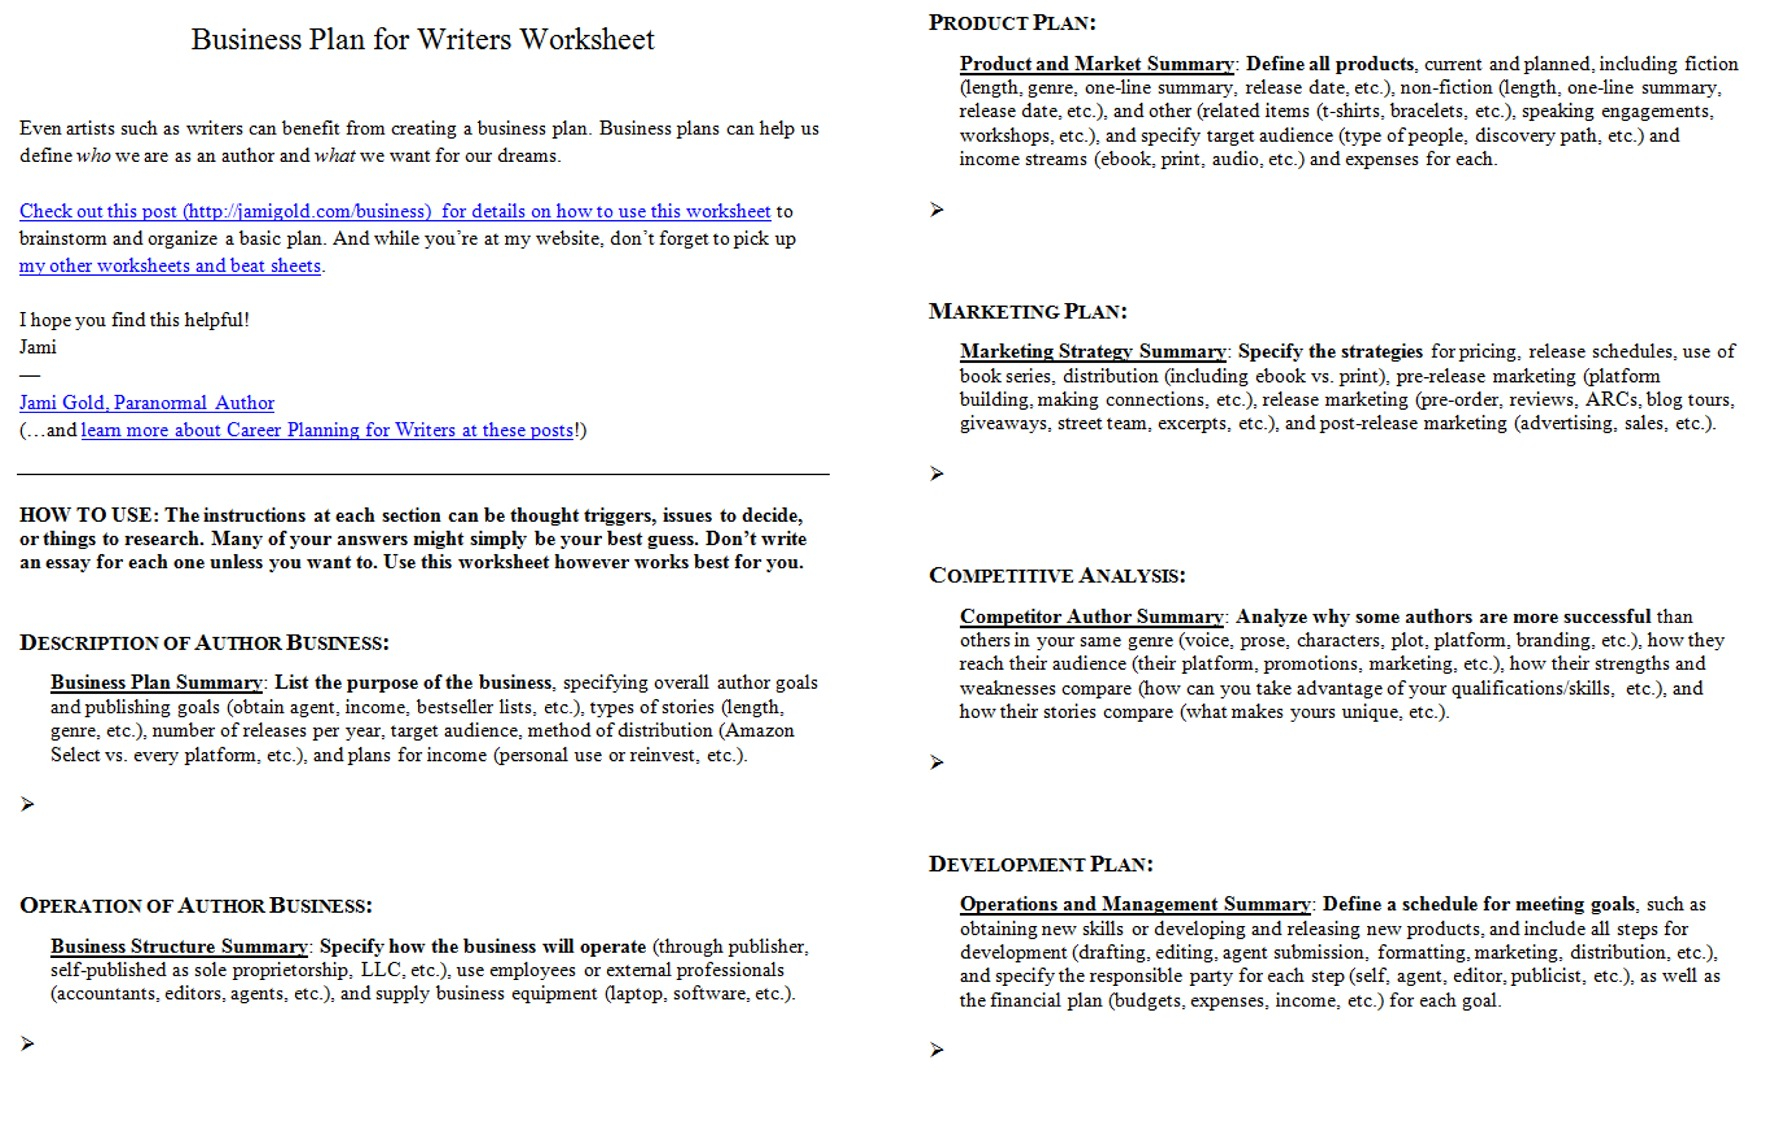 Proatmealus  Fascinating Worksheets For Writers  Jami Gold Paranormal Author With Handsome Screen Shot Of Both Pages Of The Business Plan For Writers Worksheet With Easy On The Eye Grams And Particles Conversion Worksheet Also The Core Movie Worksheet Answers In Addition Number Words Worksheet And Molarity Problems Worksheet As Well As Appositive Worksheet Additionally Prek Worksheets Free Printable From Jamigoldcom With Proatmealus  Handsome Worksheets For Writers  Jami Gold Paranormal Author With Easy On The Eye Screen Shot Of Both Pages Of The Business Plan For Writers Worksheet And Fascinating Grams And Particles Conversion Worksheet Also The Core Movie Worksheet Answers In Addition Number Words Worksheet From Jamigoldcom